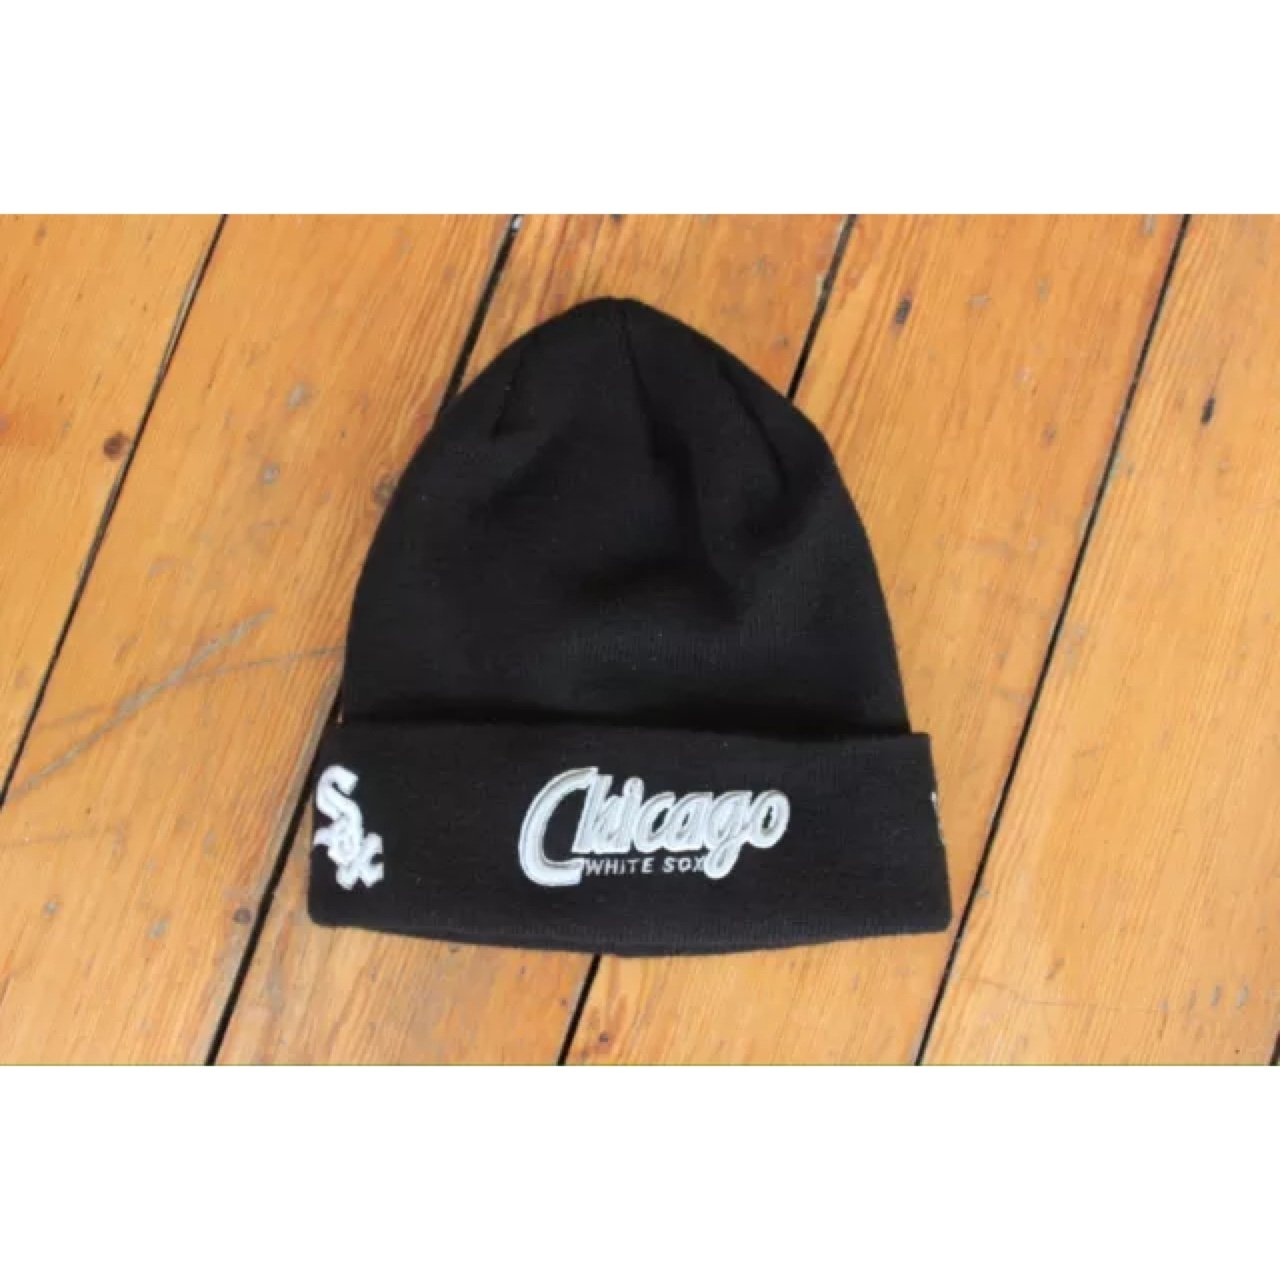 5927c11d Chicago beanie New era in black One size fits all Like Nike - Depop